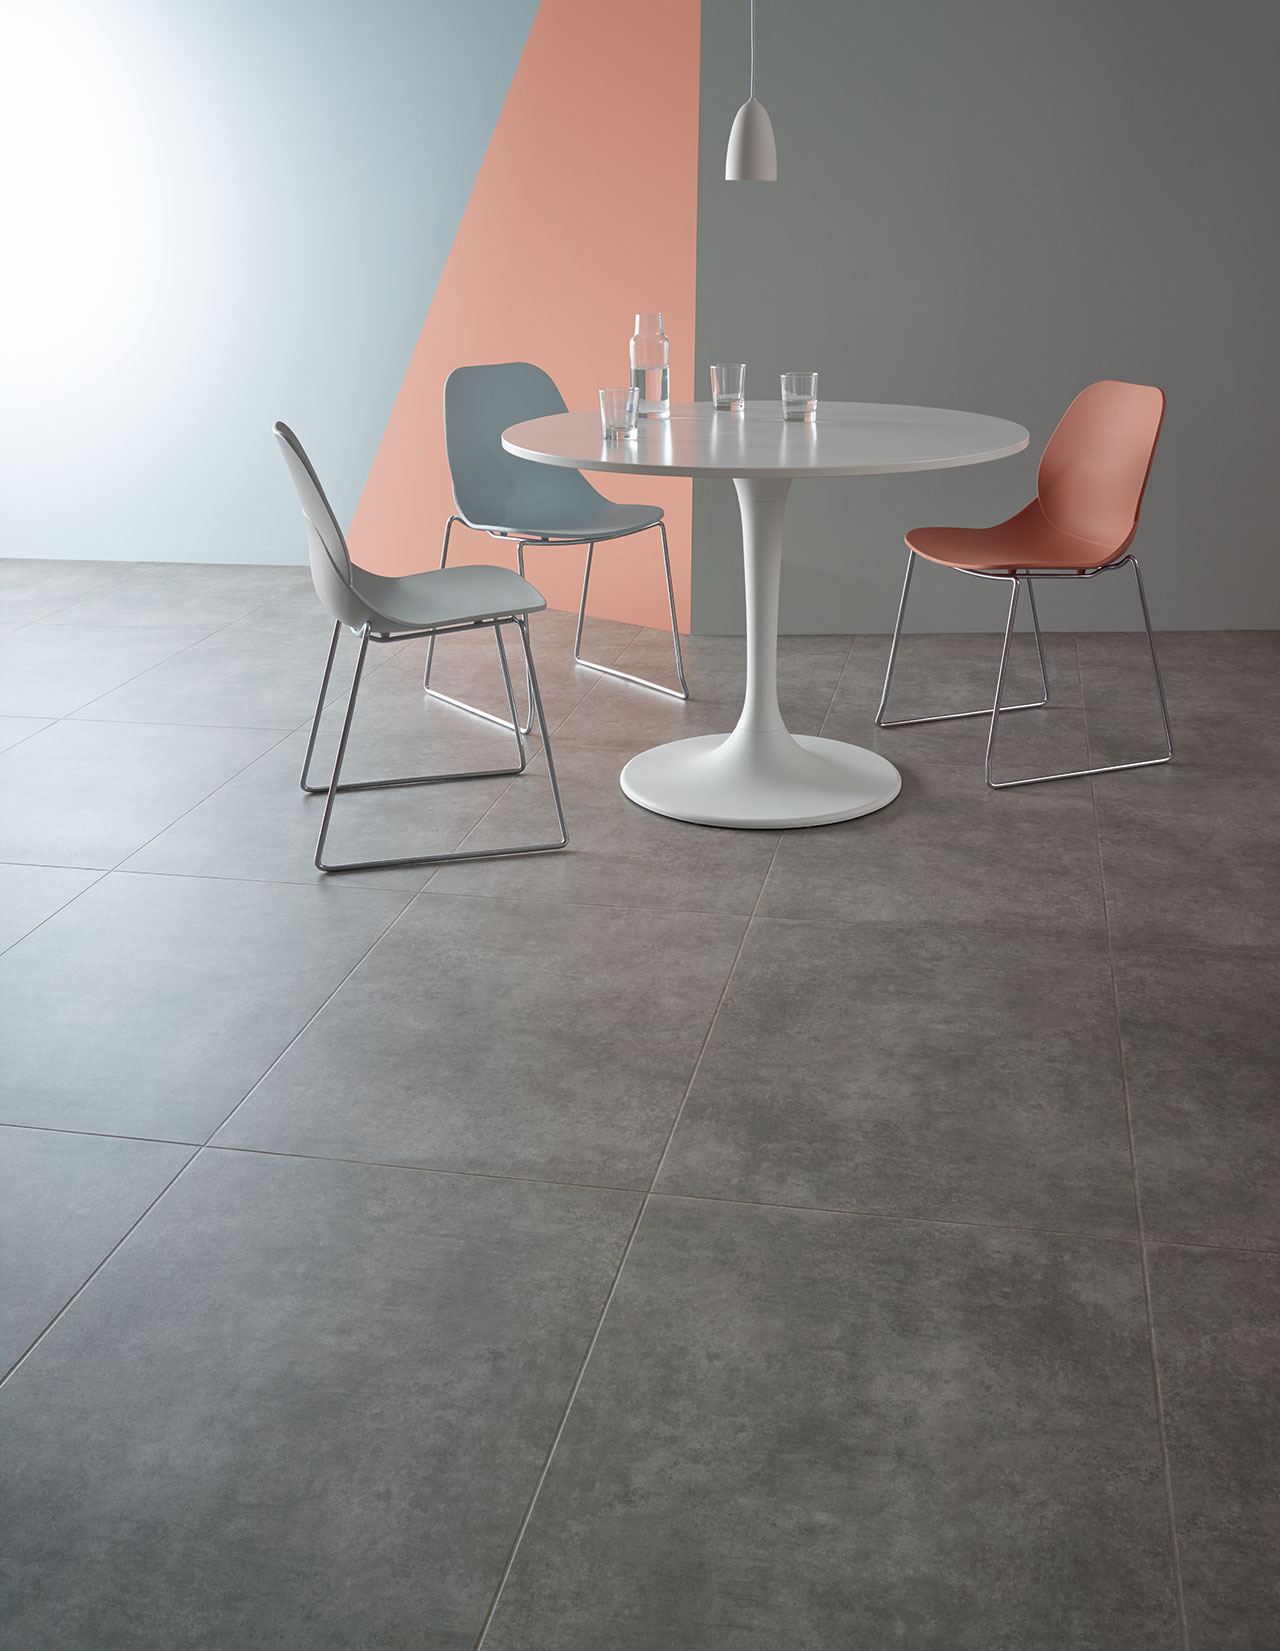 Gallery Concrete SS5S3071 in Uniform laying pattern with concrete pale stripping